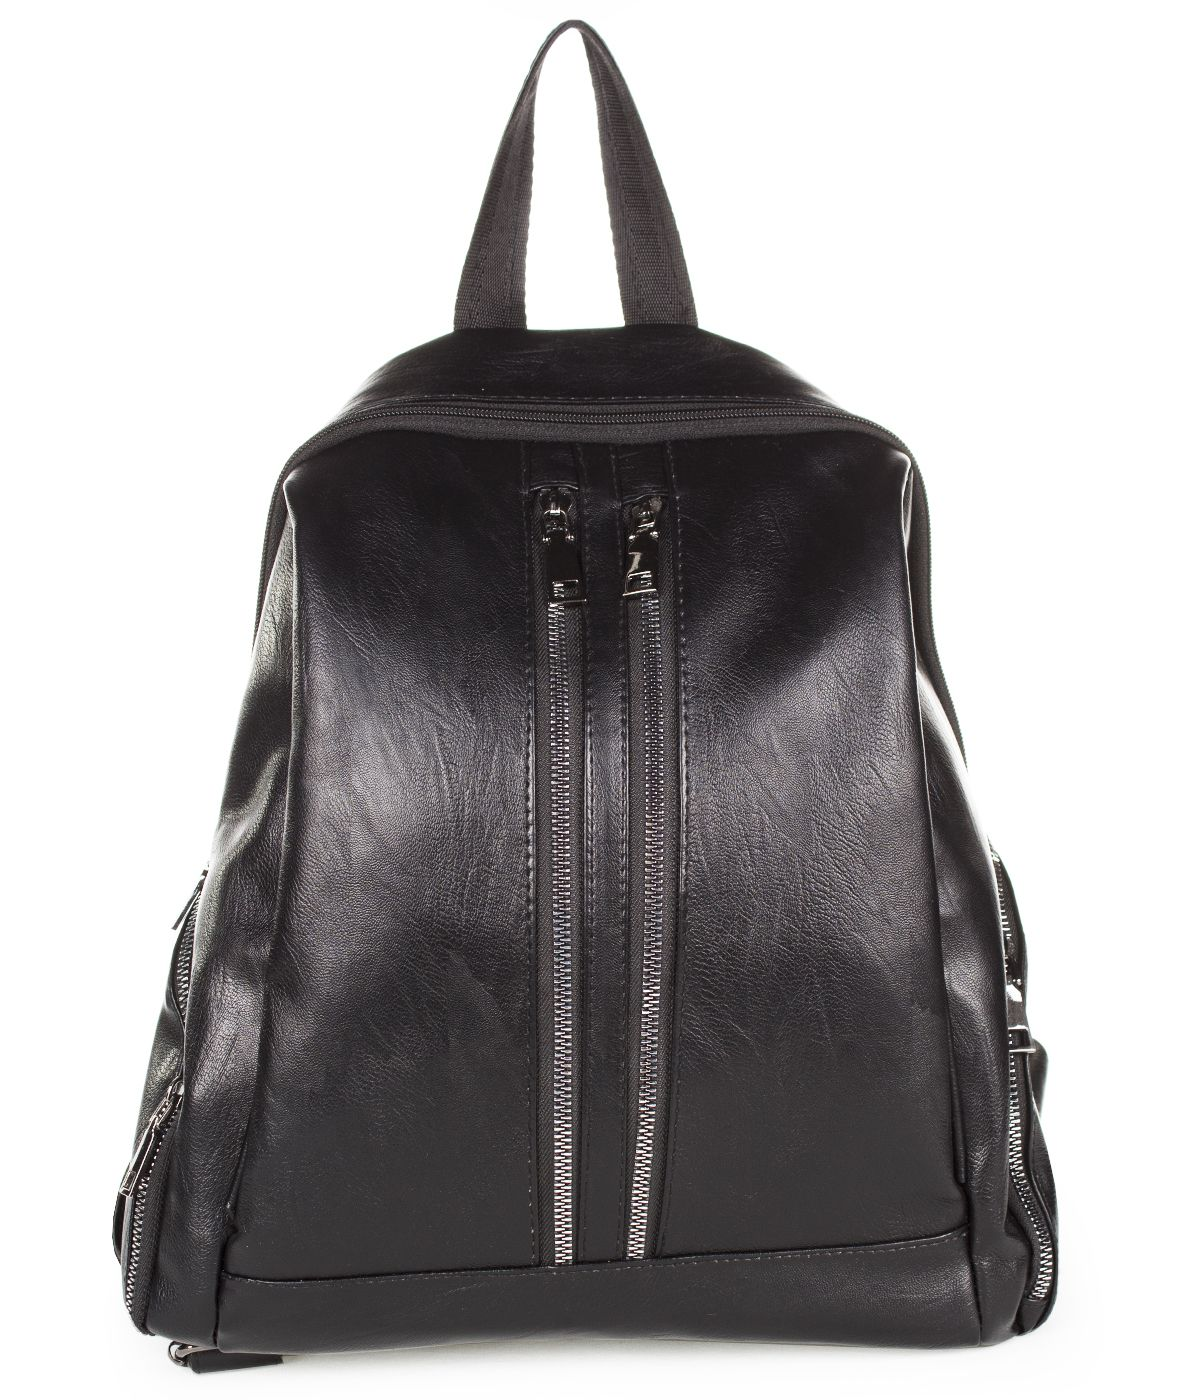 BLACK LEATHER BACKPACK 2